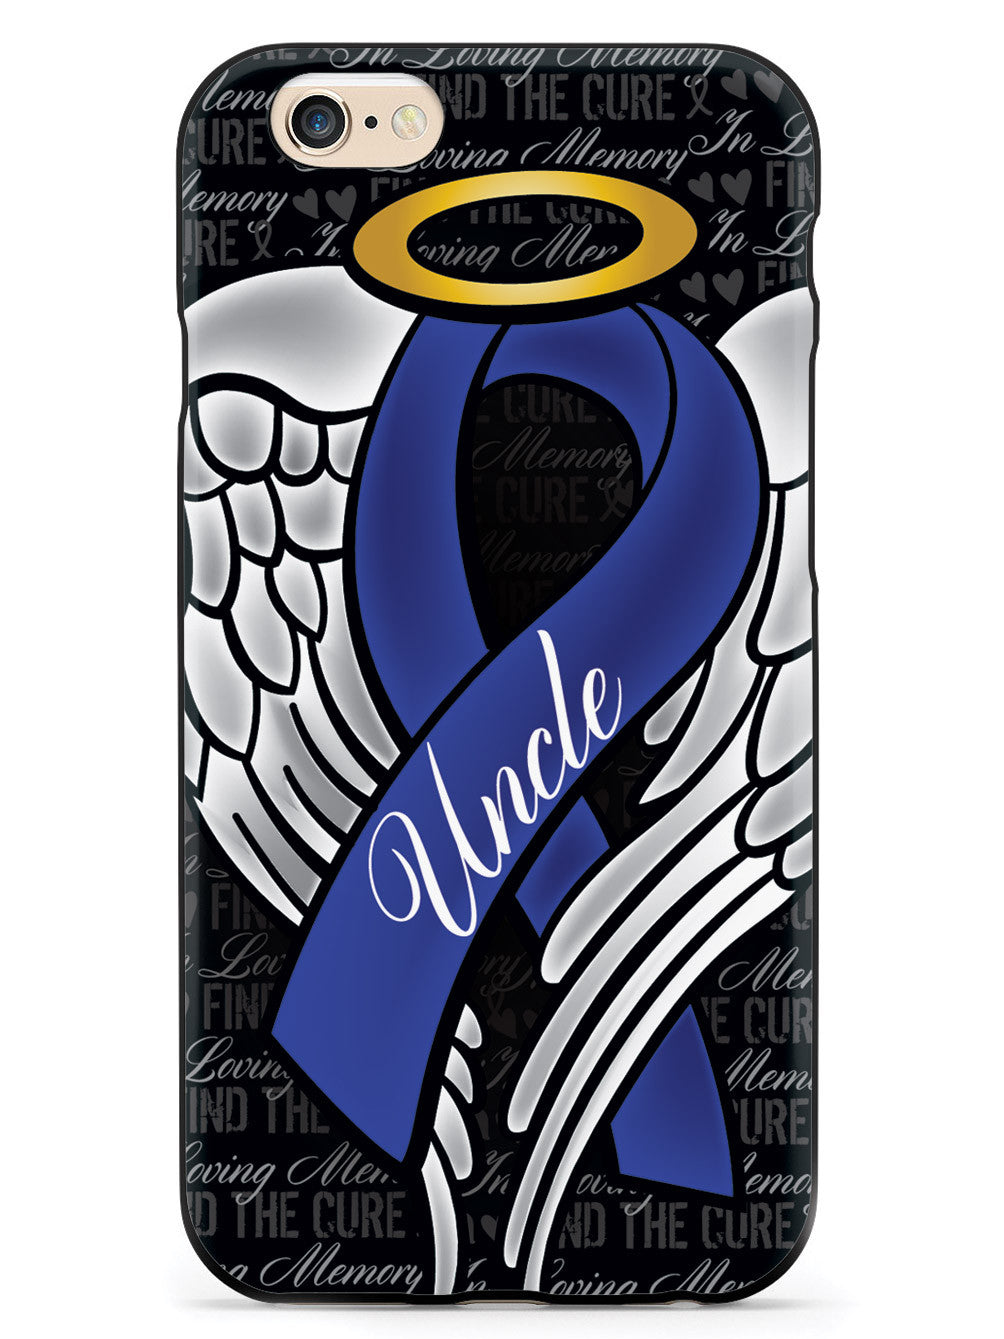 In Loving Memory of My Uncle - Blue Ribbon Case